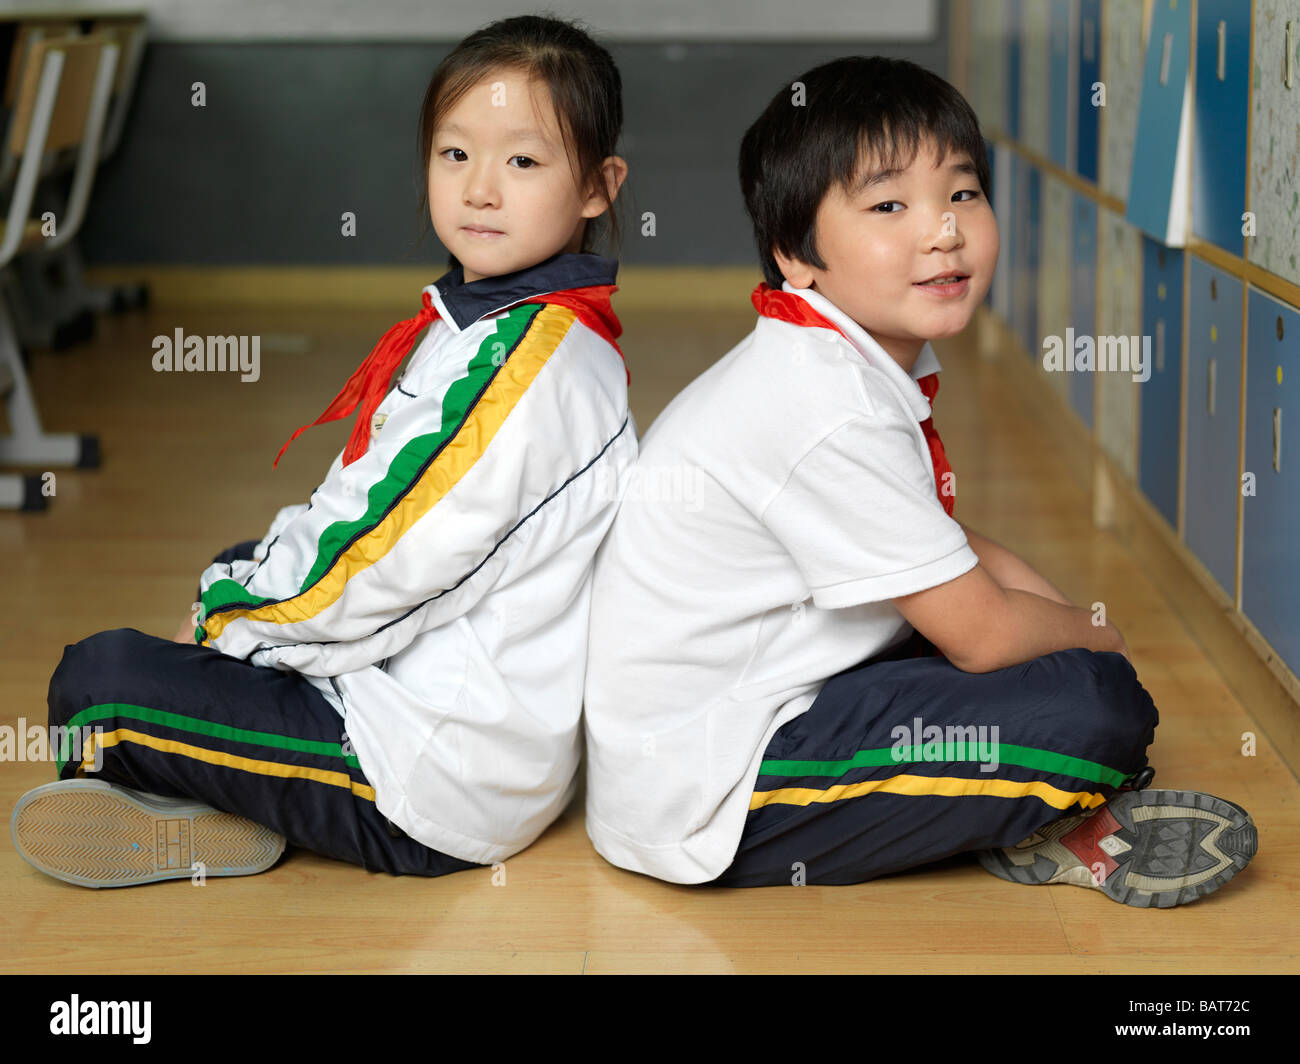 Two classmates sitting Indian-style on the floor of their classroom. - Stock Image